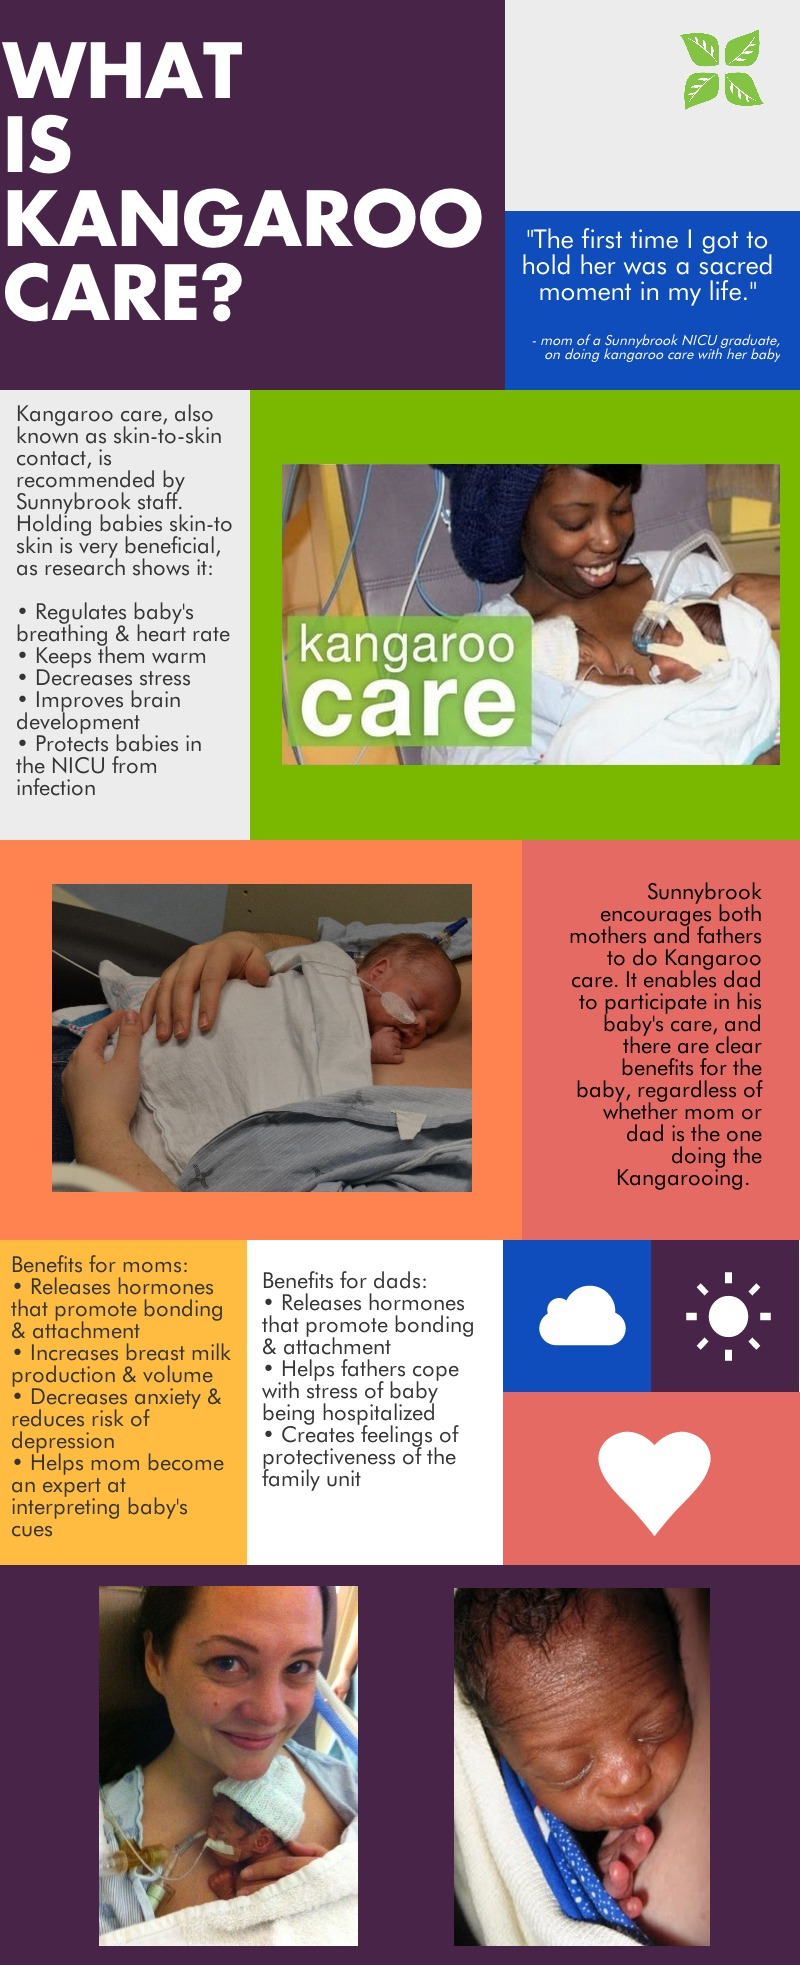 What is kangaroo care? - infographic